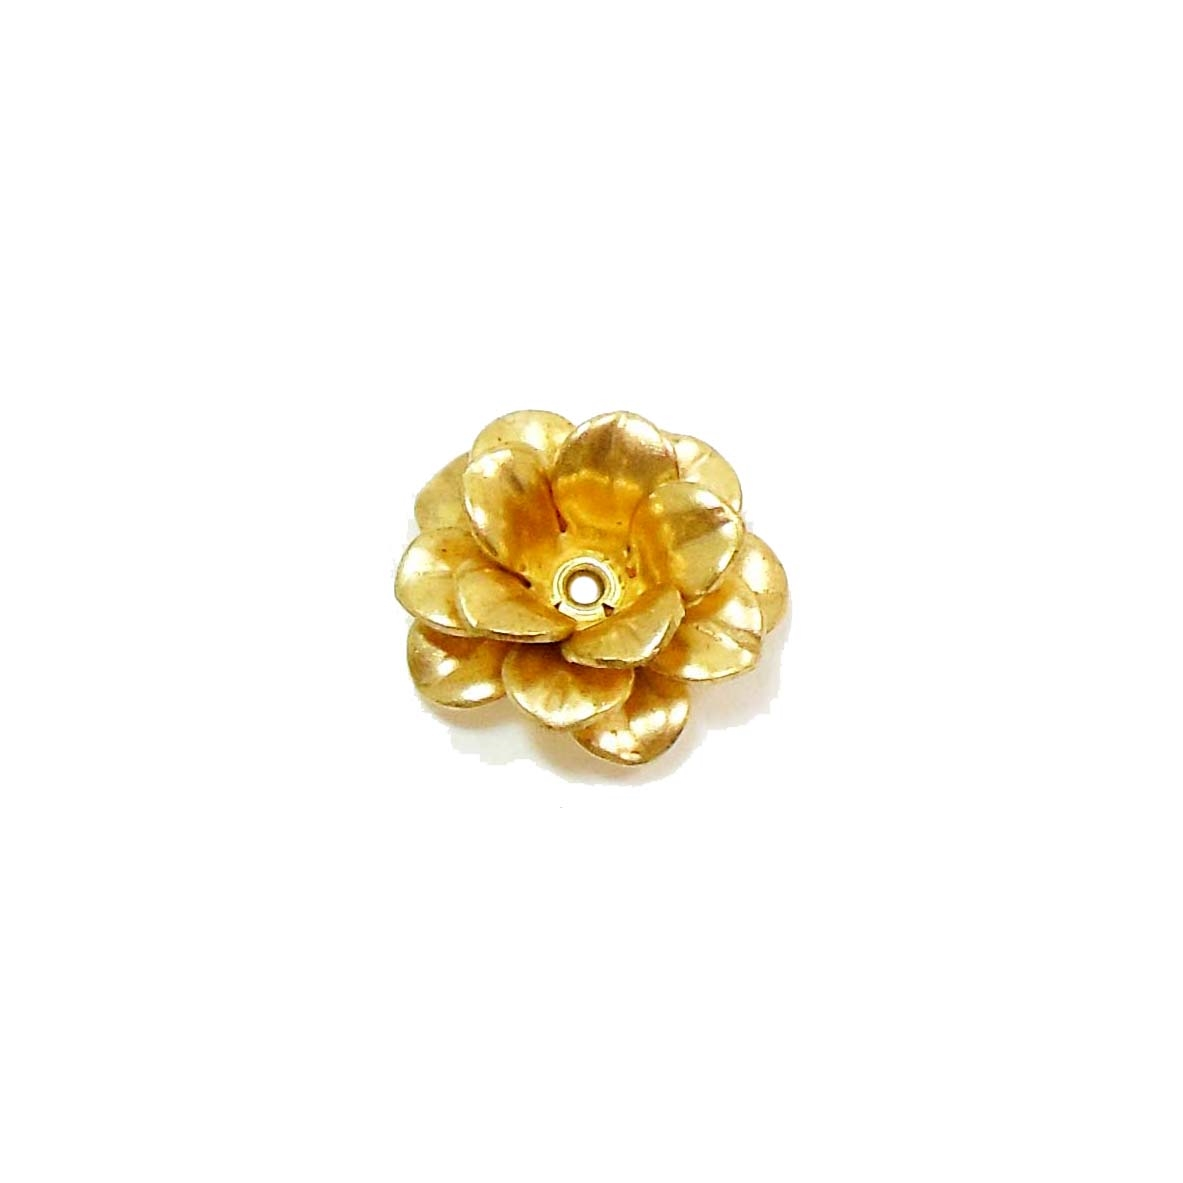 brass flowers, tea roses, jewelry making, 13mm, brass rose, rose, flower